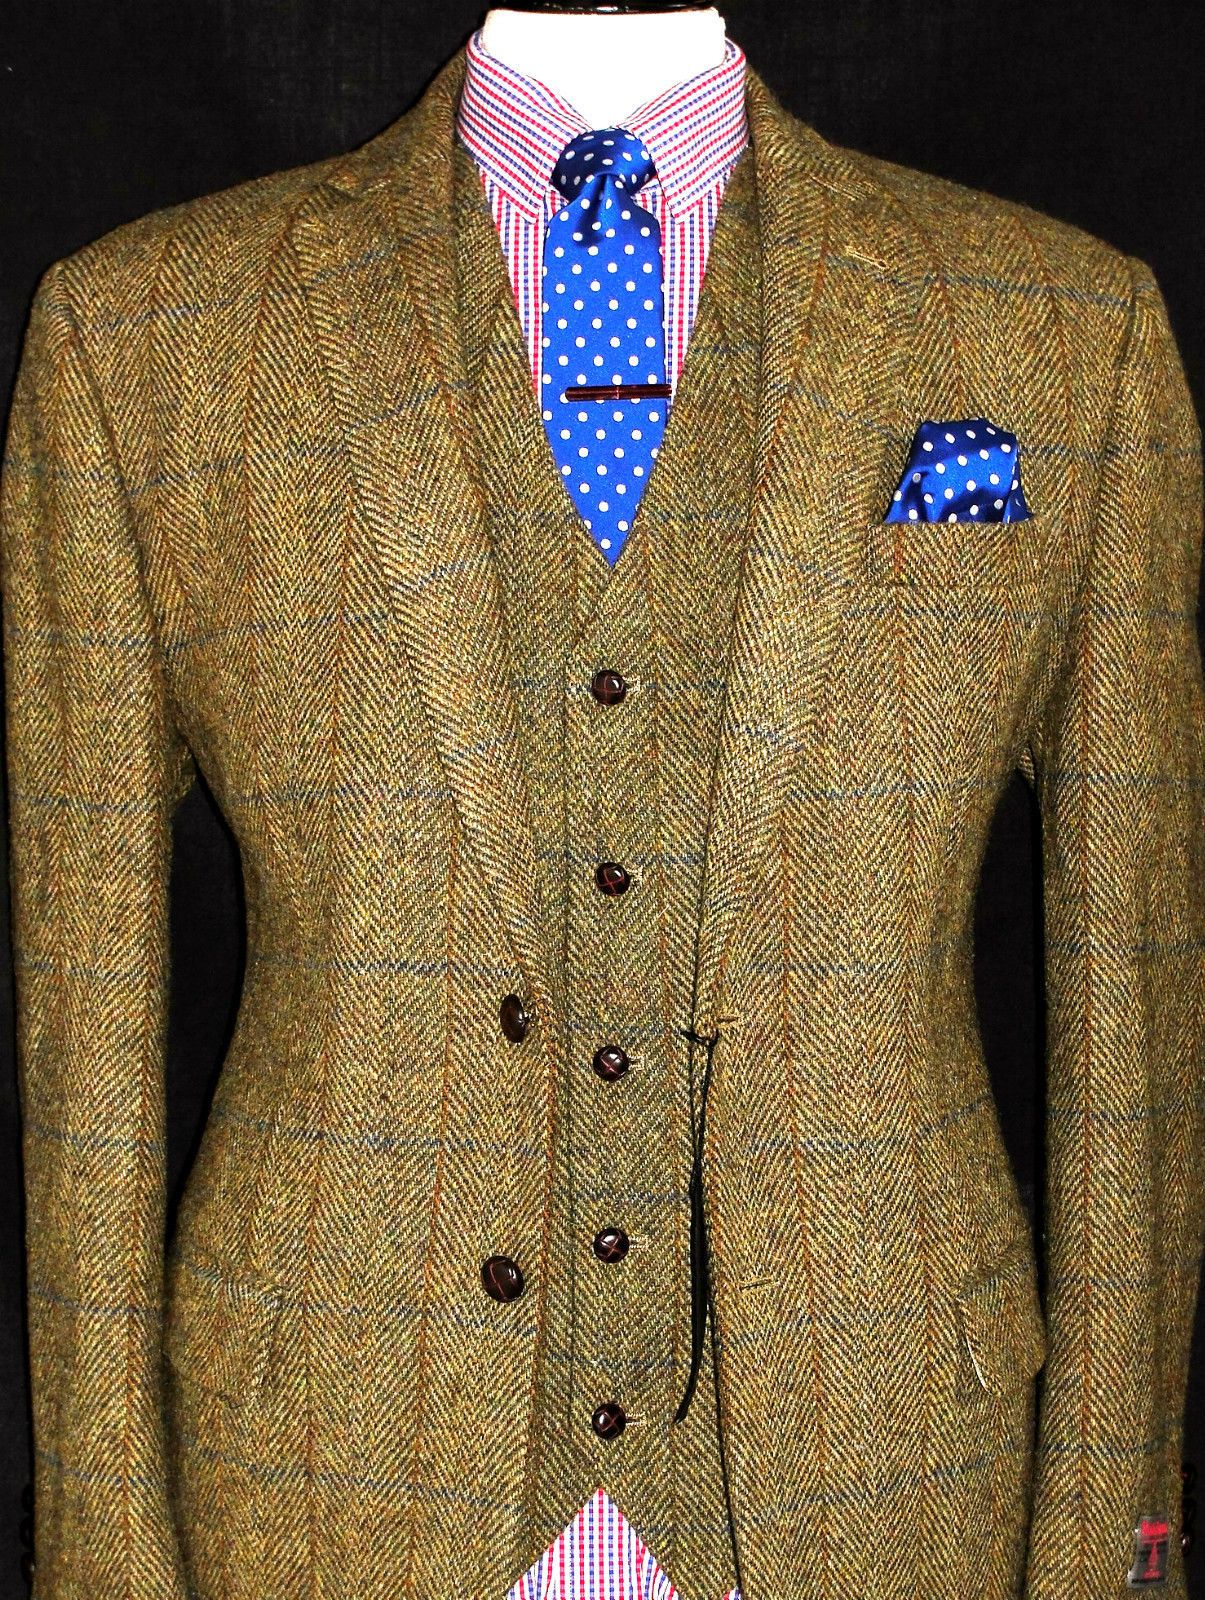 Bnwt Mens Harris Tweed London Shooting Hunting Suit Jacket Waistcoat 46s Hunting Suit Mens Outfits Outdoor Outfit